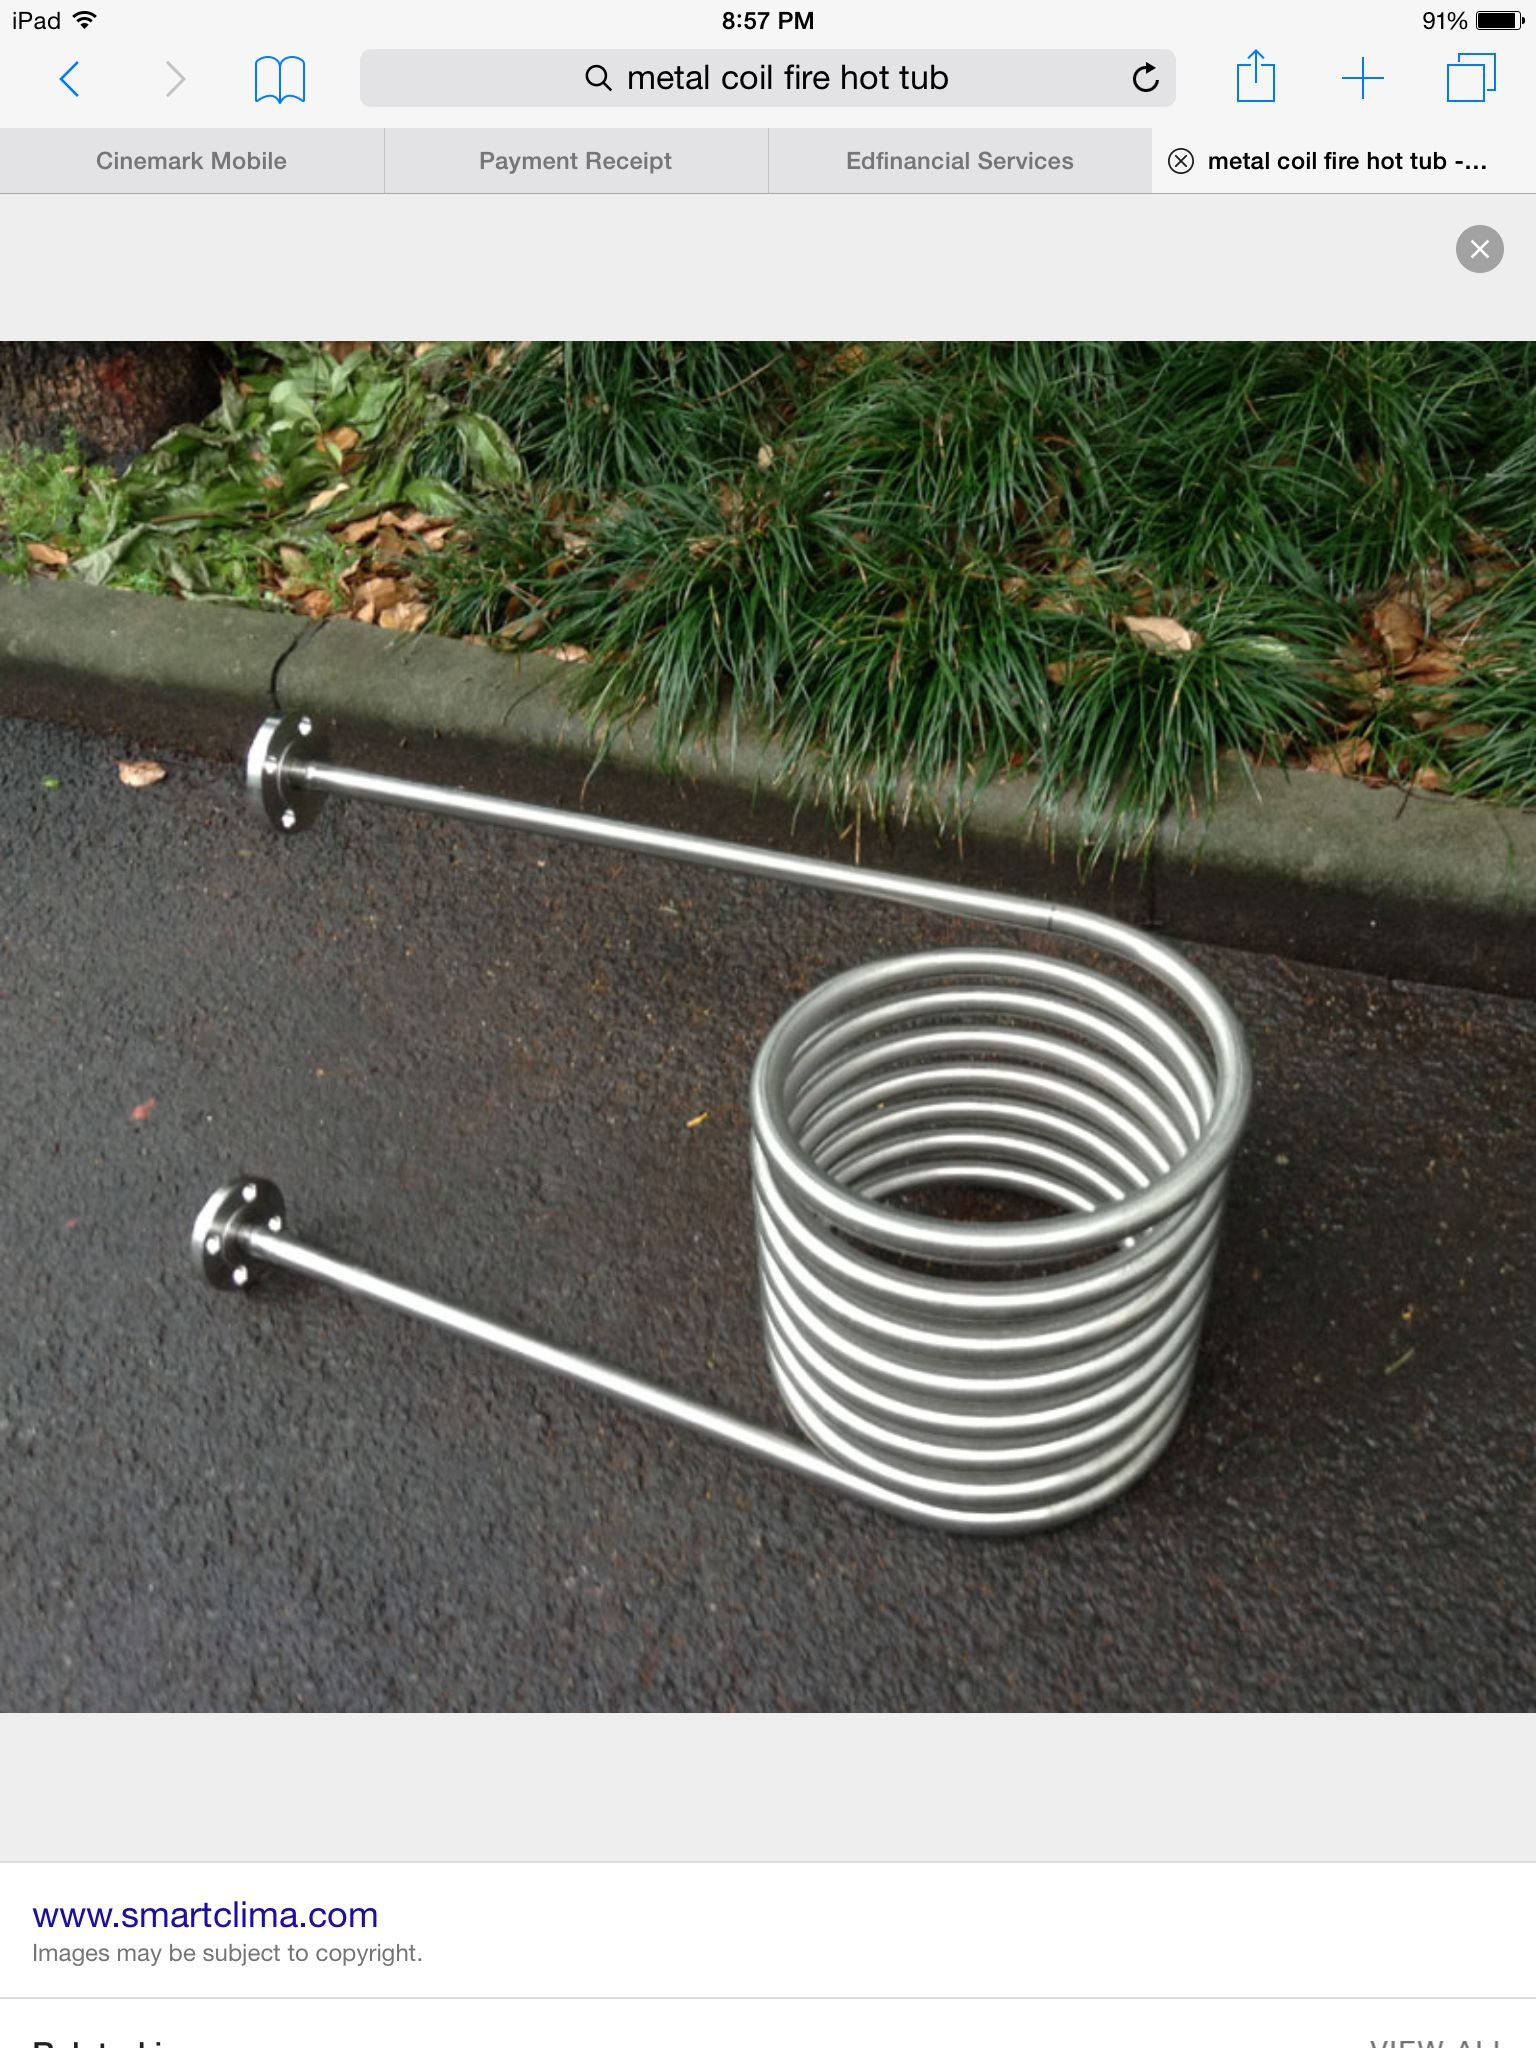 water heating coil for hot tub | Hot tubs | Pinterest ...